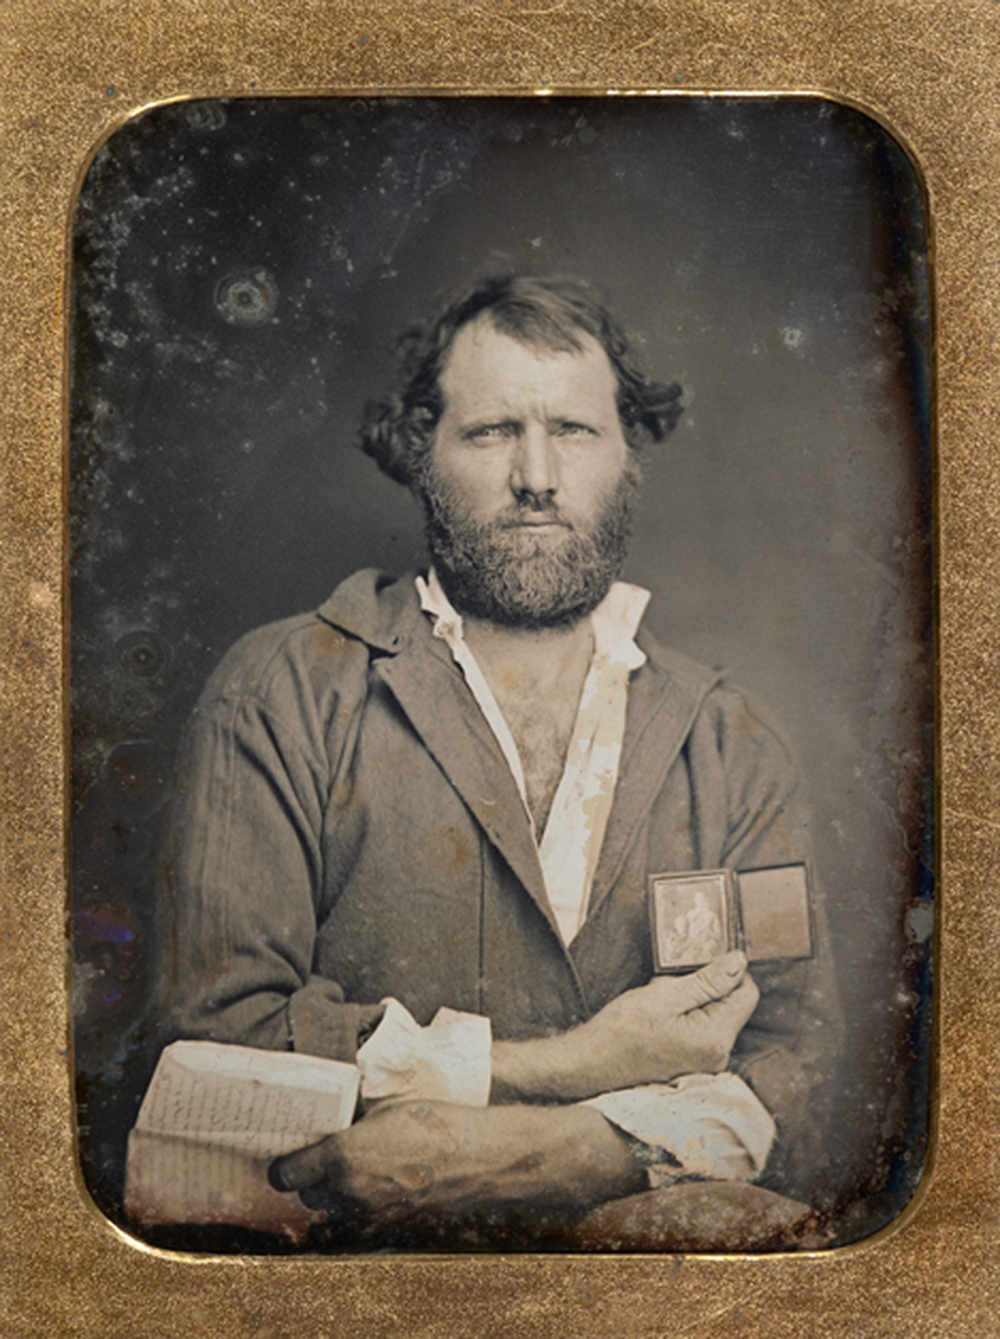 Portrait of a California gold miner with daguerreotype and letter, quarter-plate daguerreotype. c. 1852. The Nelson-Atkins Museum of Art.